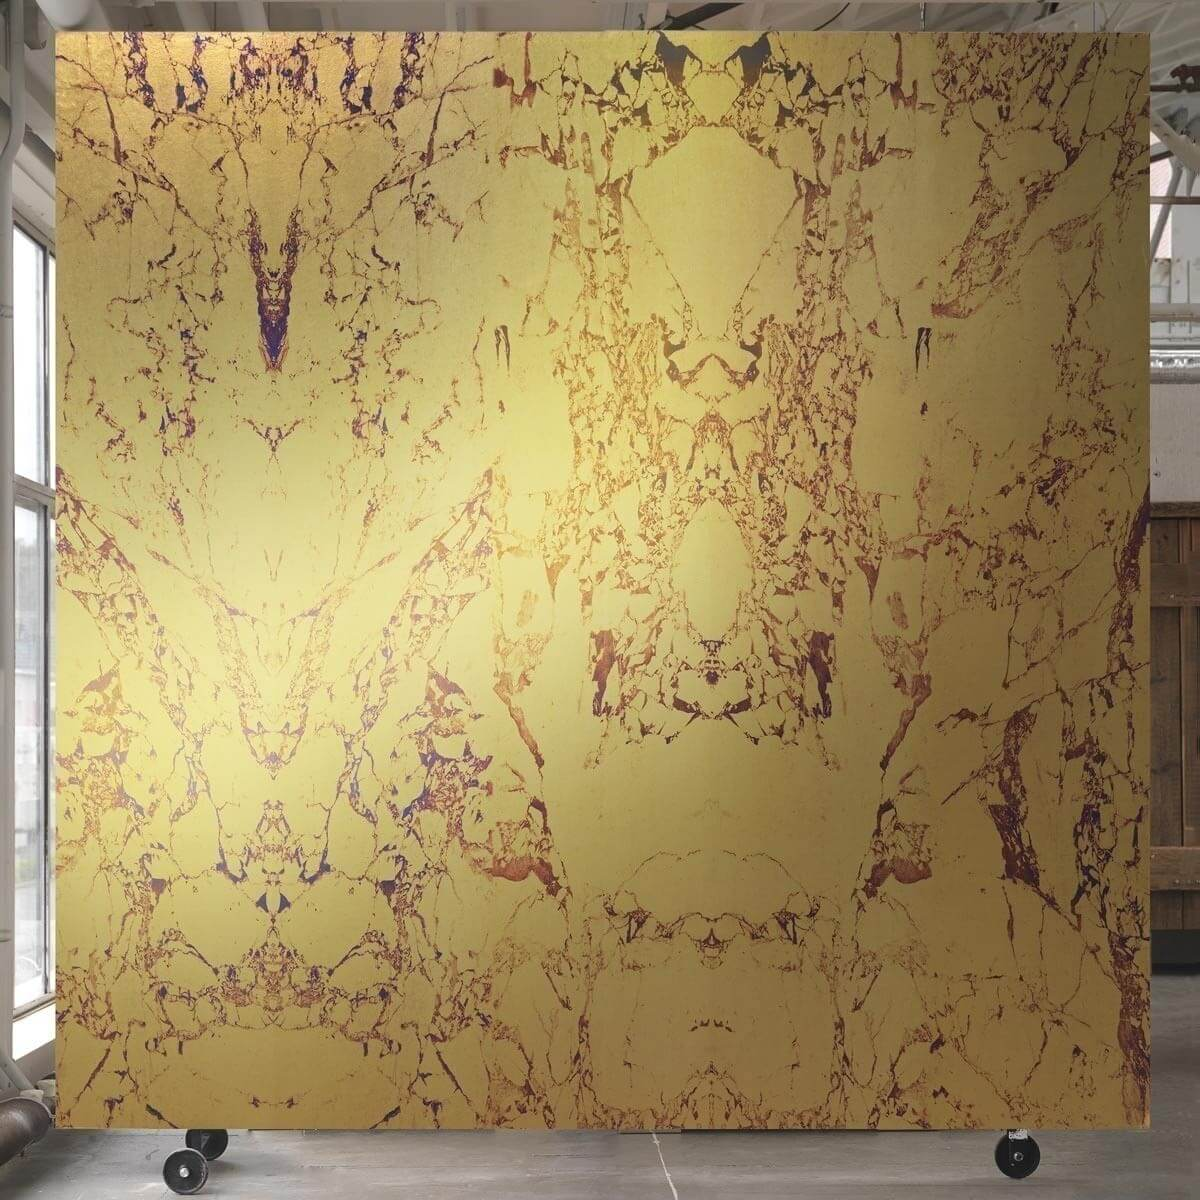 Gold Marble Wall Wall Covering - NLXL by Arte